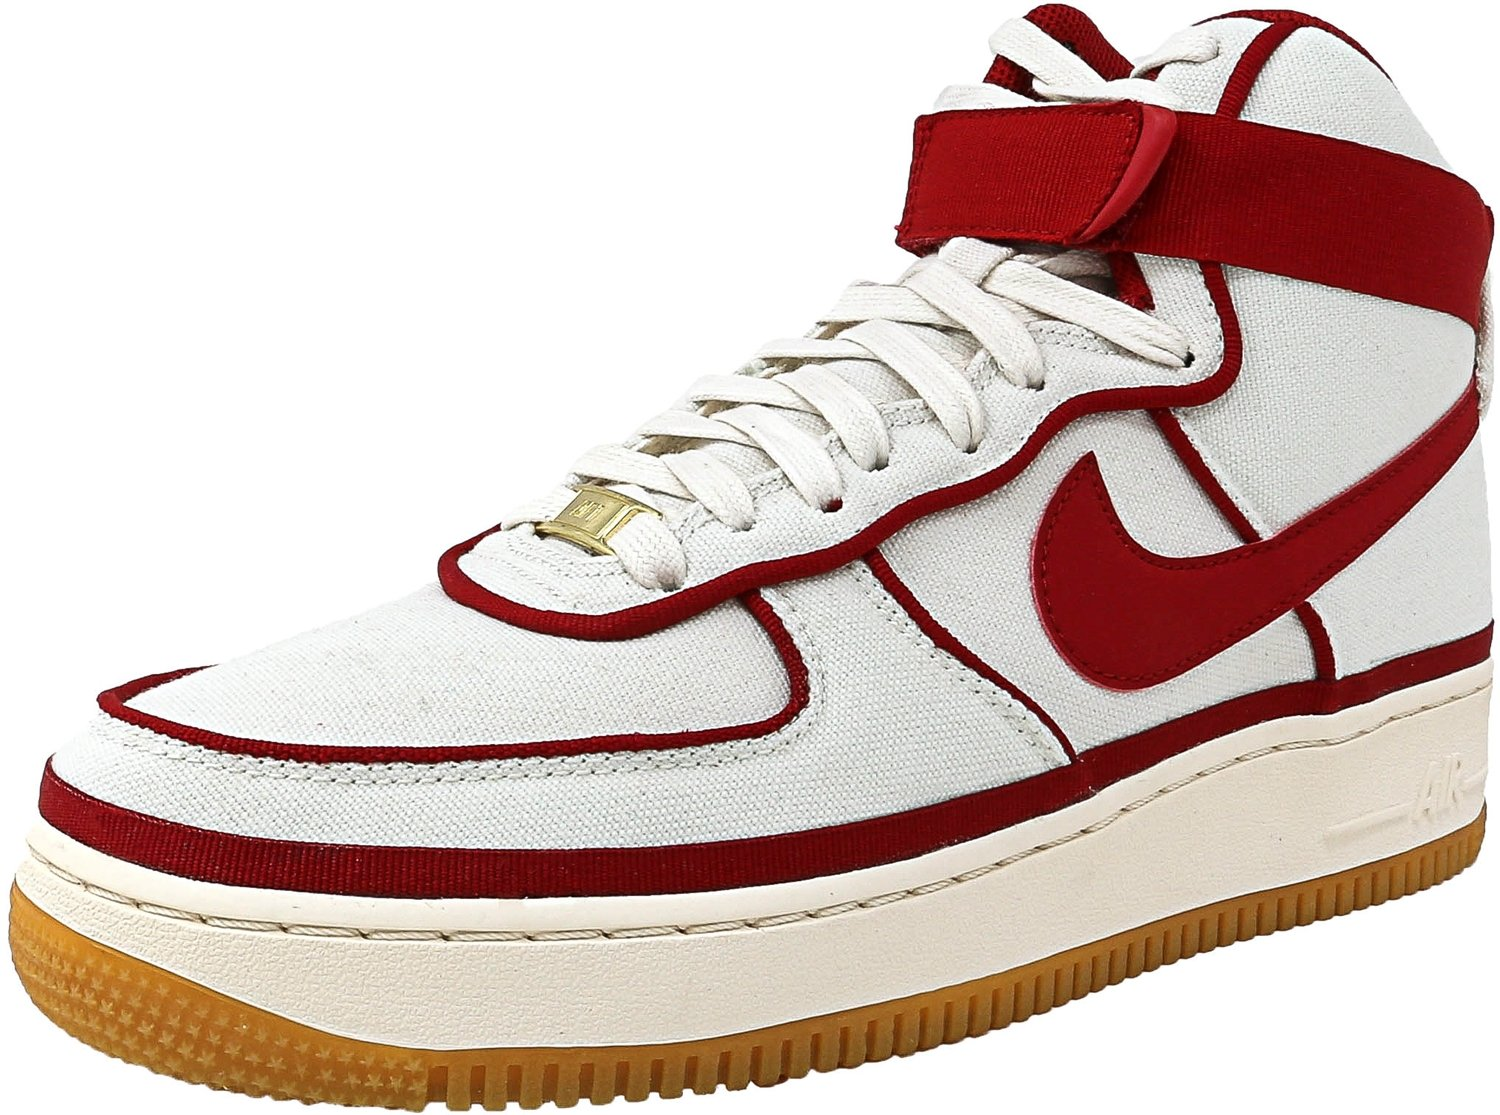 new product 2ed46 191bf Galleon - Nike Air Force 1 High  07 LV8 Men s Shoes Sail Gym Red Black  806403-101 (9.5 D(M) US)